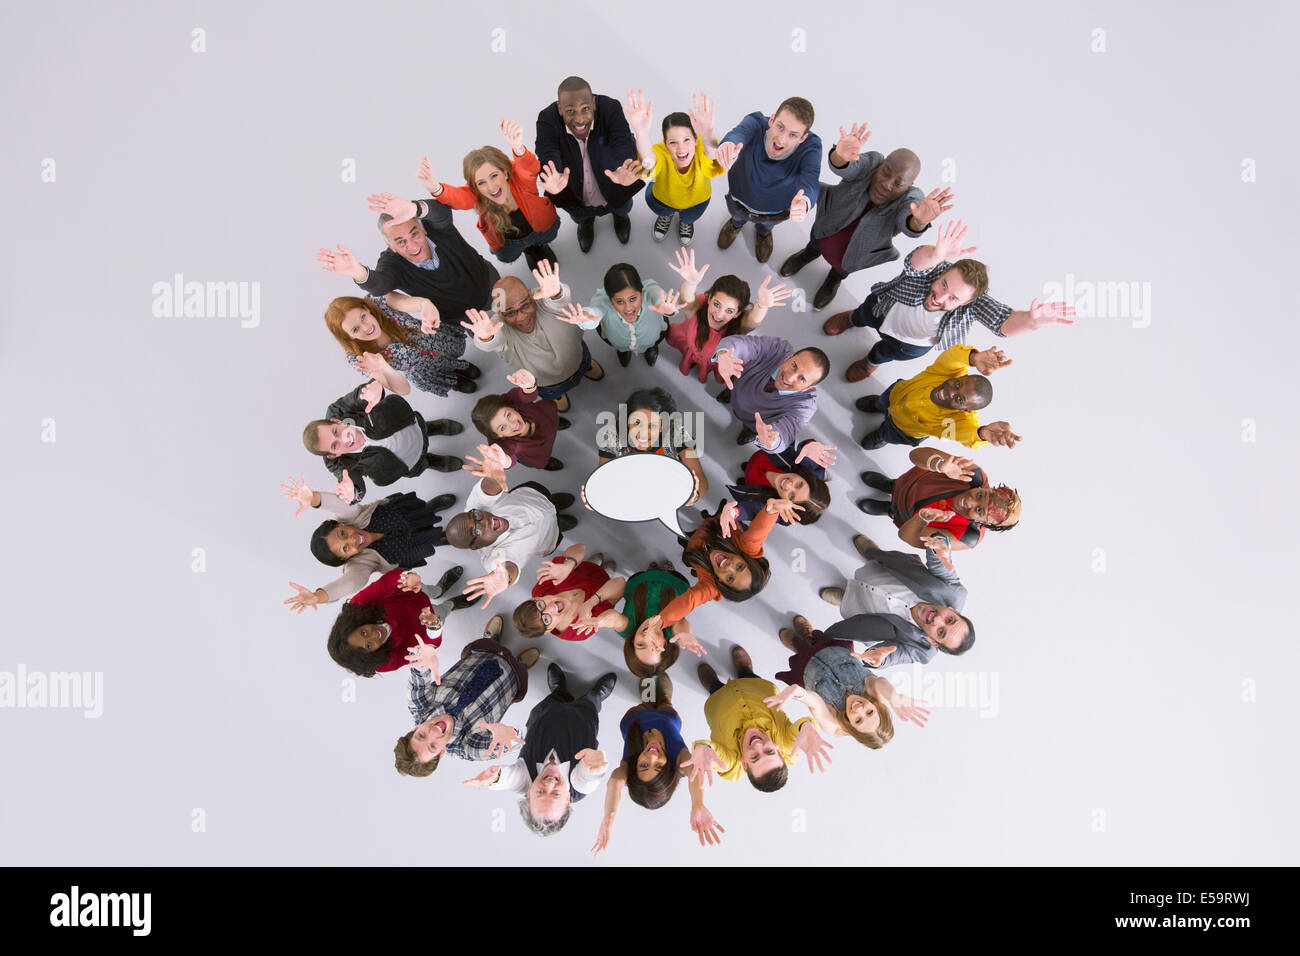 Portrait of business people in circle holding thought bubble - Stock Image